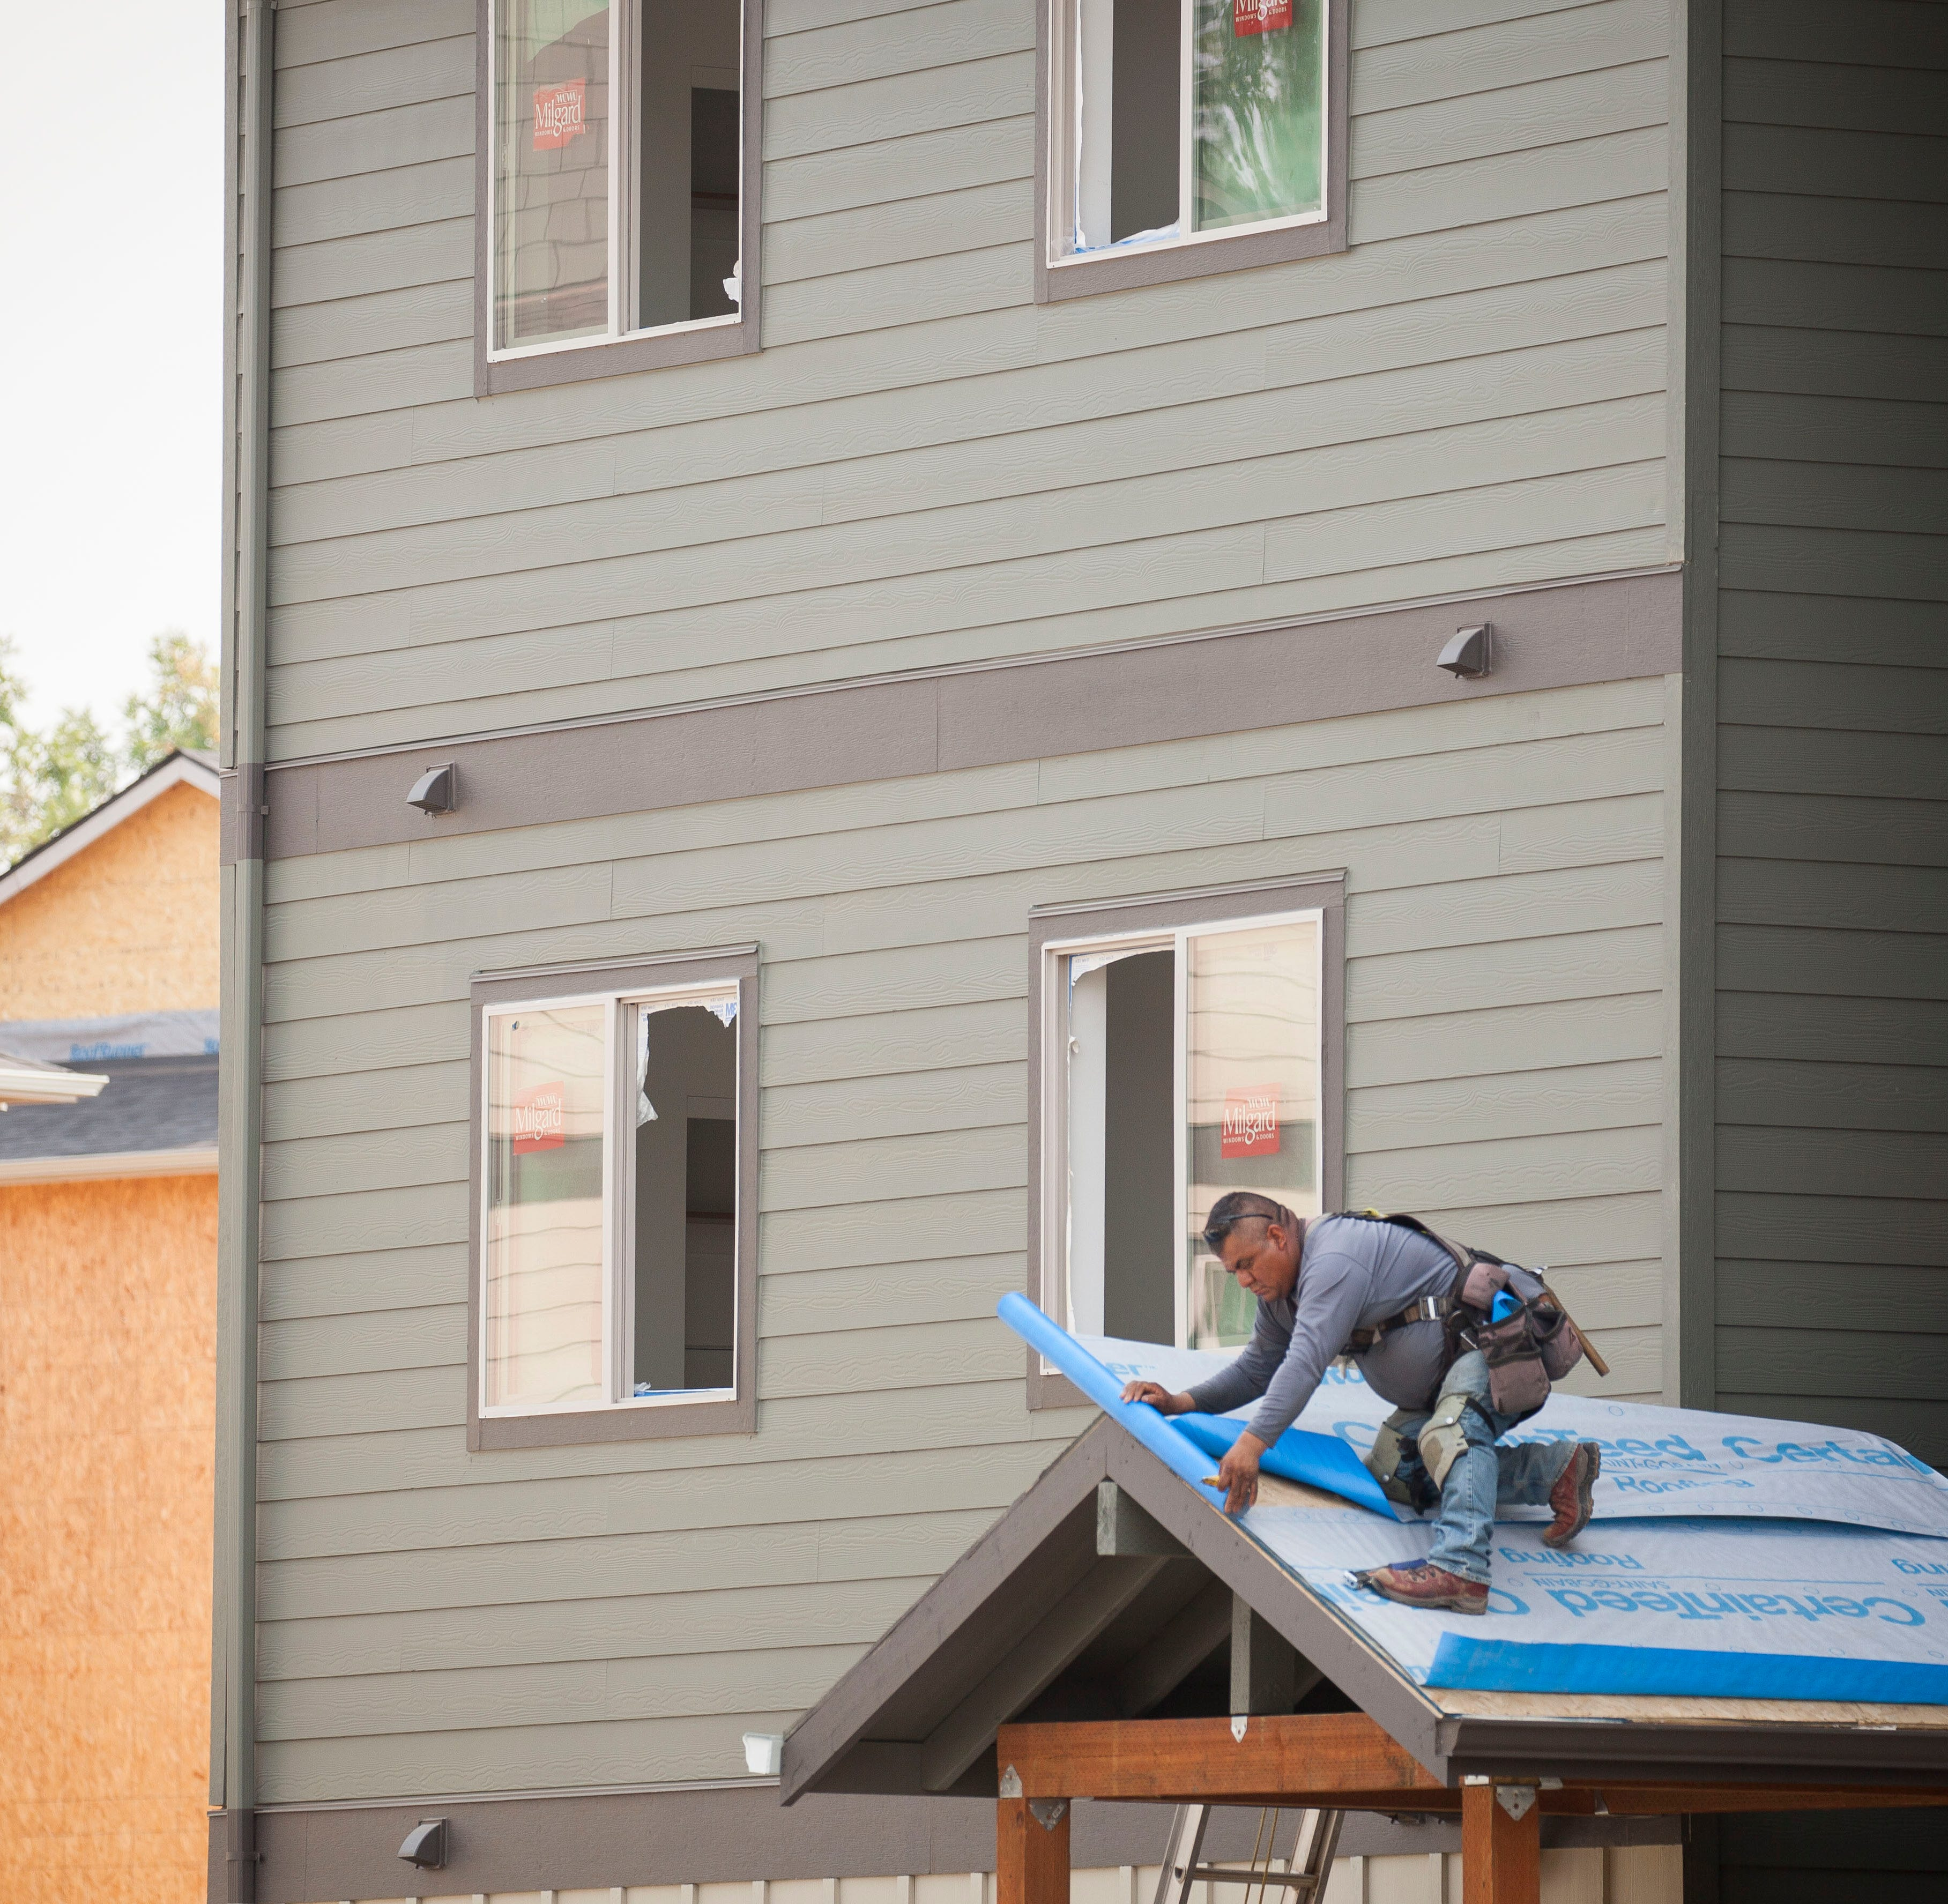 Oregon wants to make it easier to build affordable housing by eliminating single-family zoning